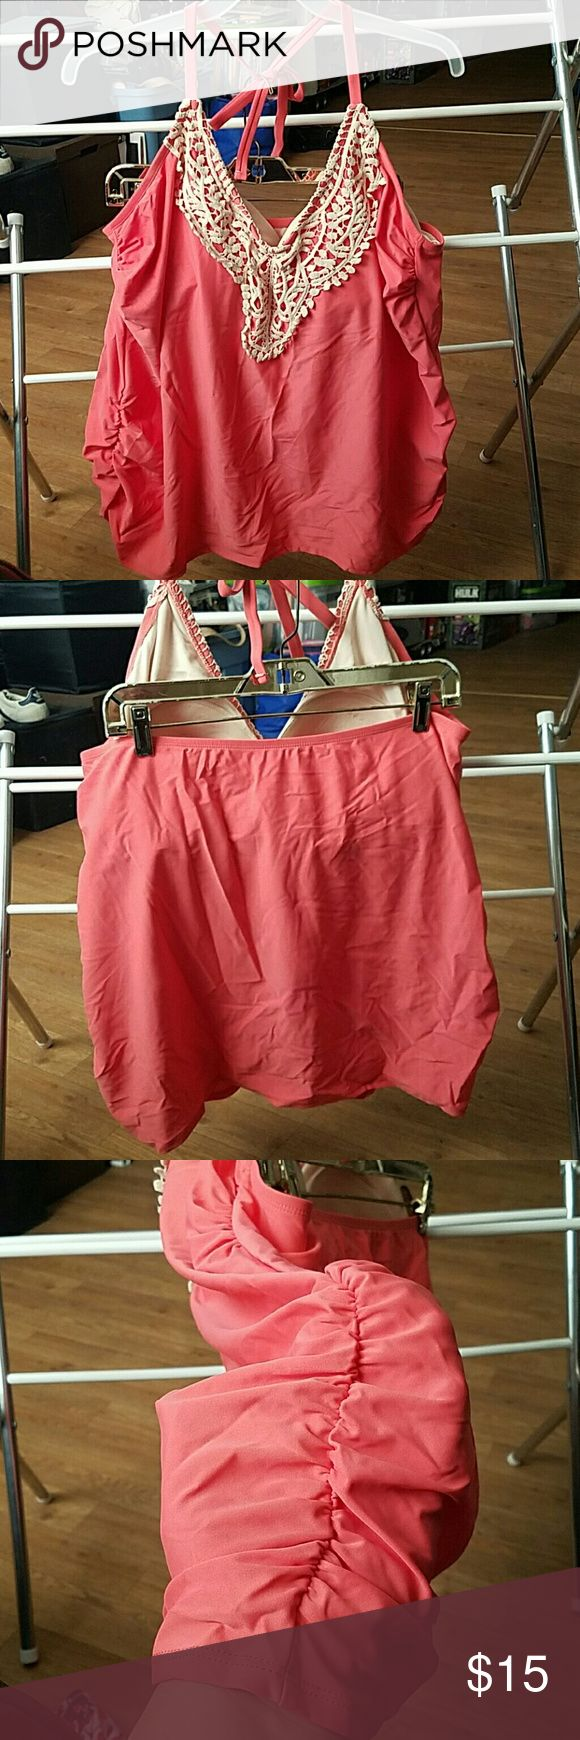 Ava & Viv swim top Tankini Ava & Viv swim top Tankini , new never used , peach with cream details NWOT Ava & Viv Swim